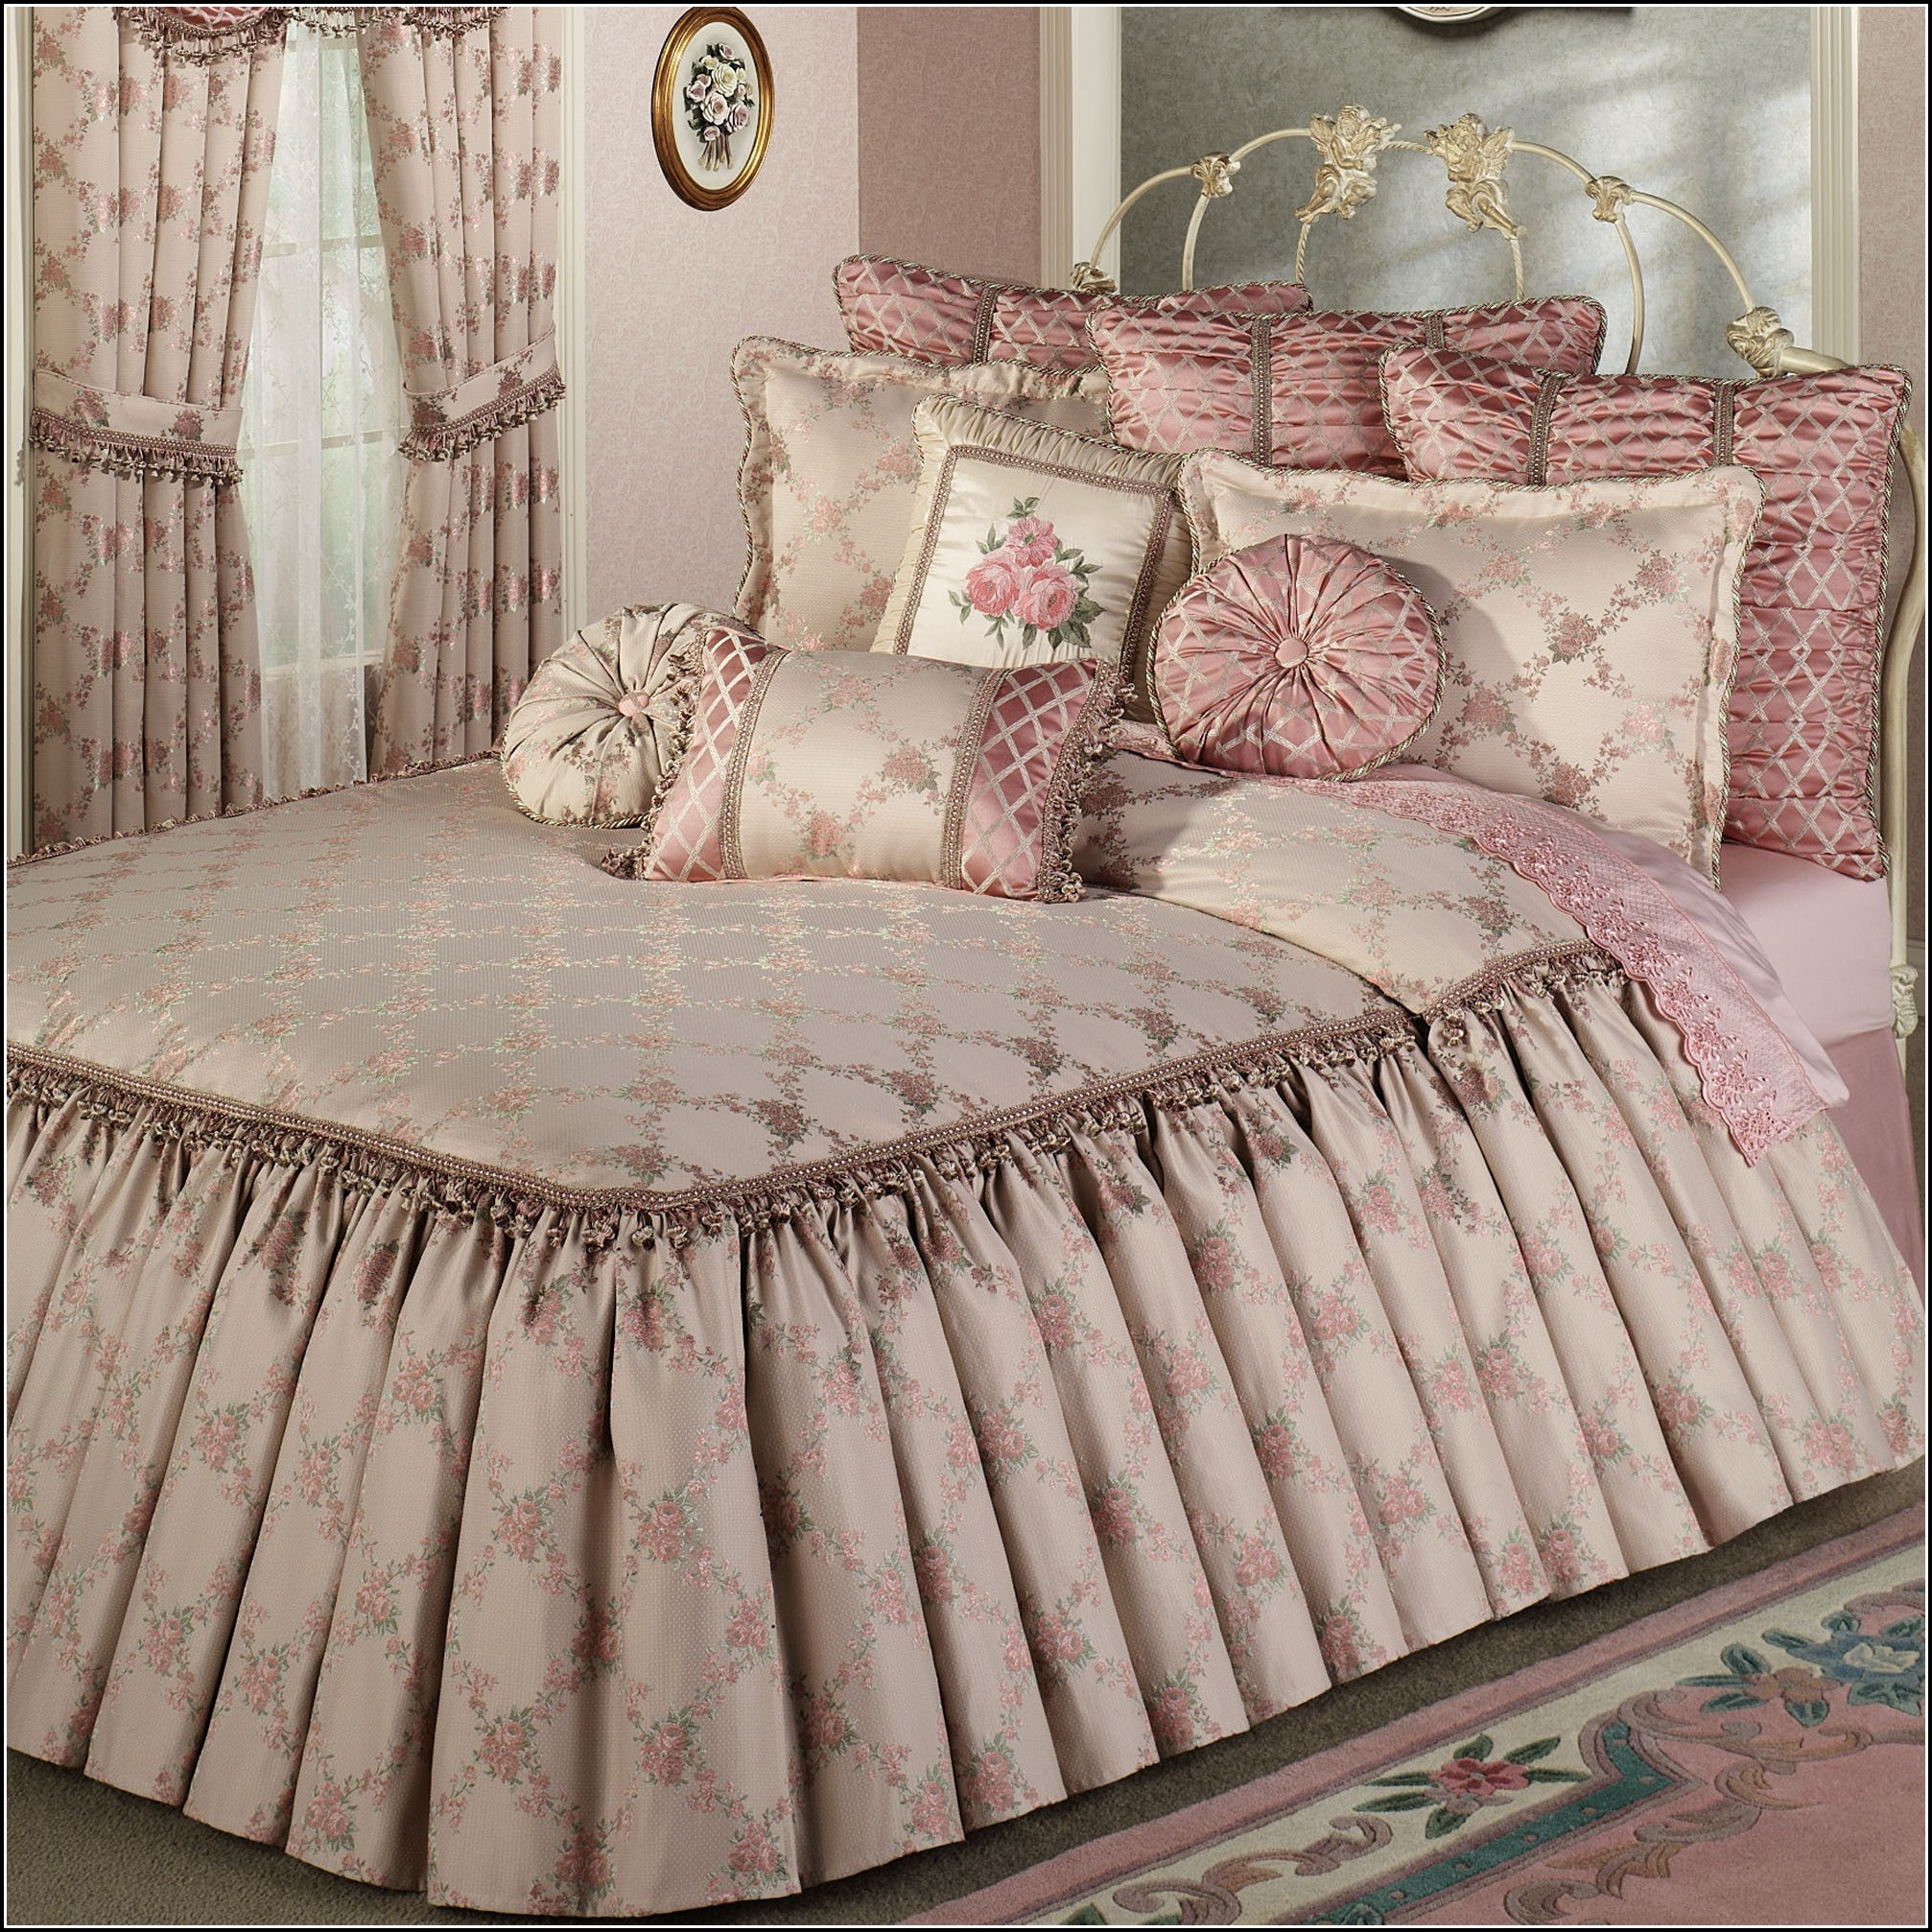 Matching Curtains And Bedding Sets Curtains Home